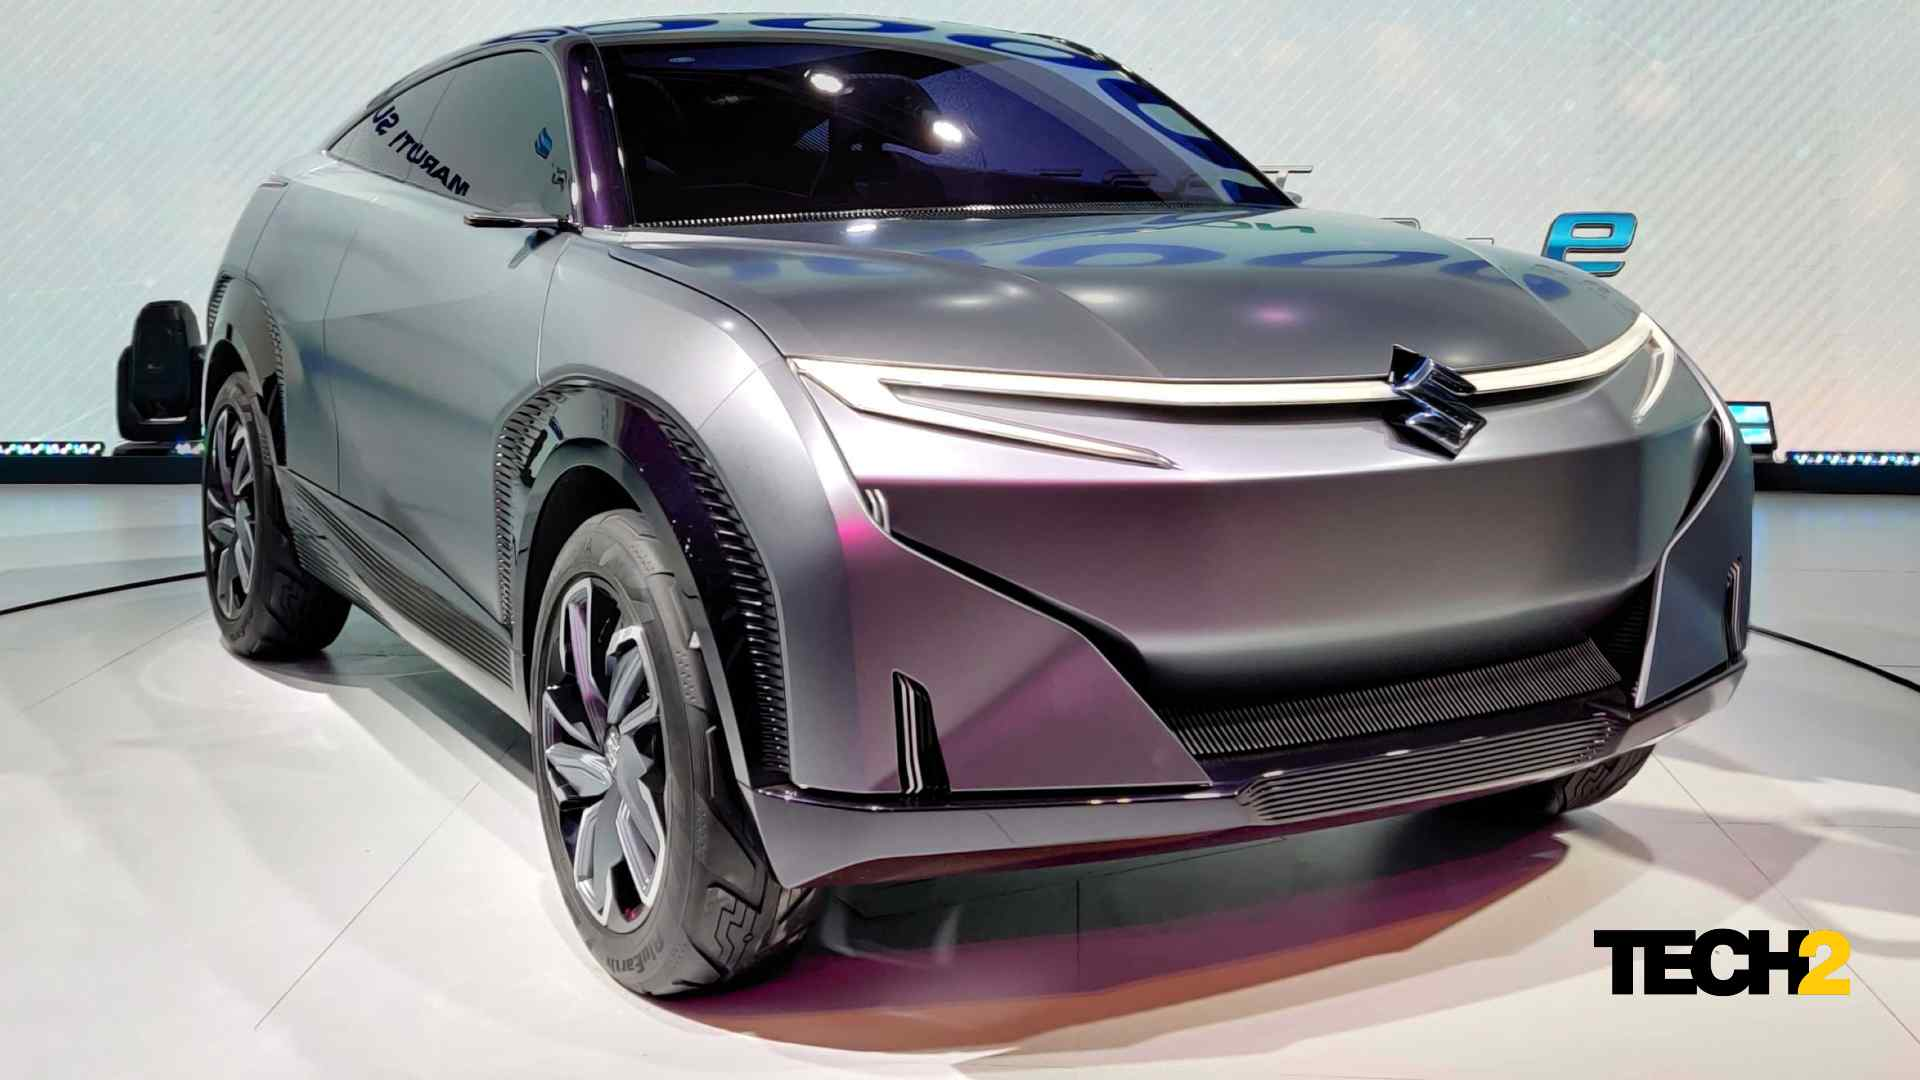 Maruti Suzuki is understood to be collaborating with Toyota to roll out a new midsize SUV. Image: Tech2/Amaan Ahmed